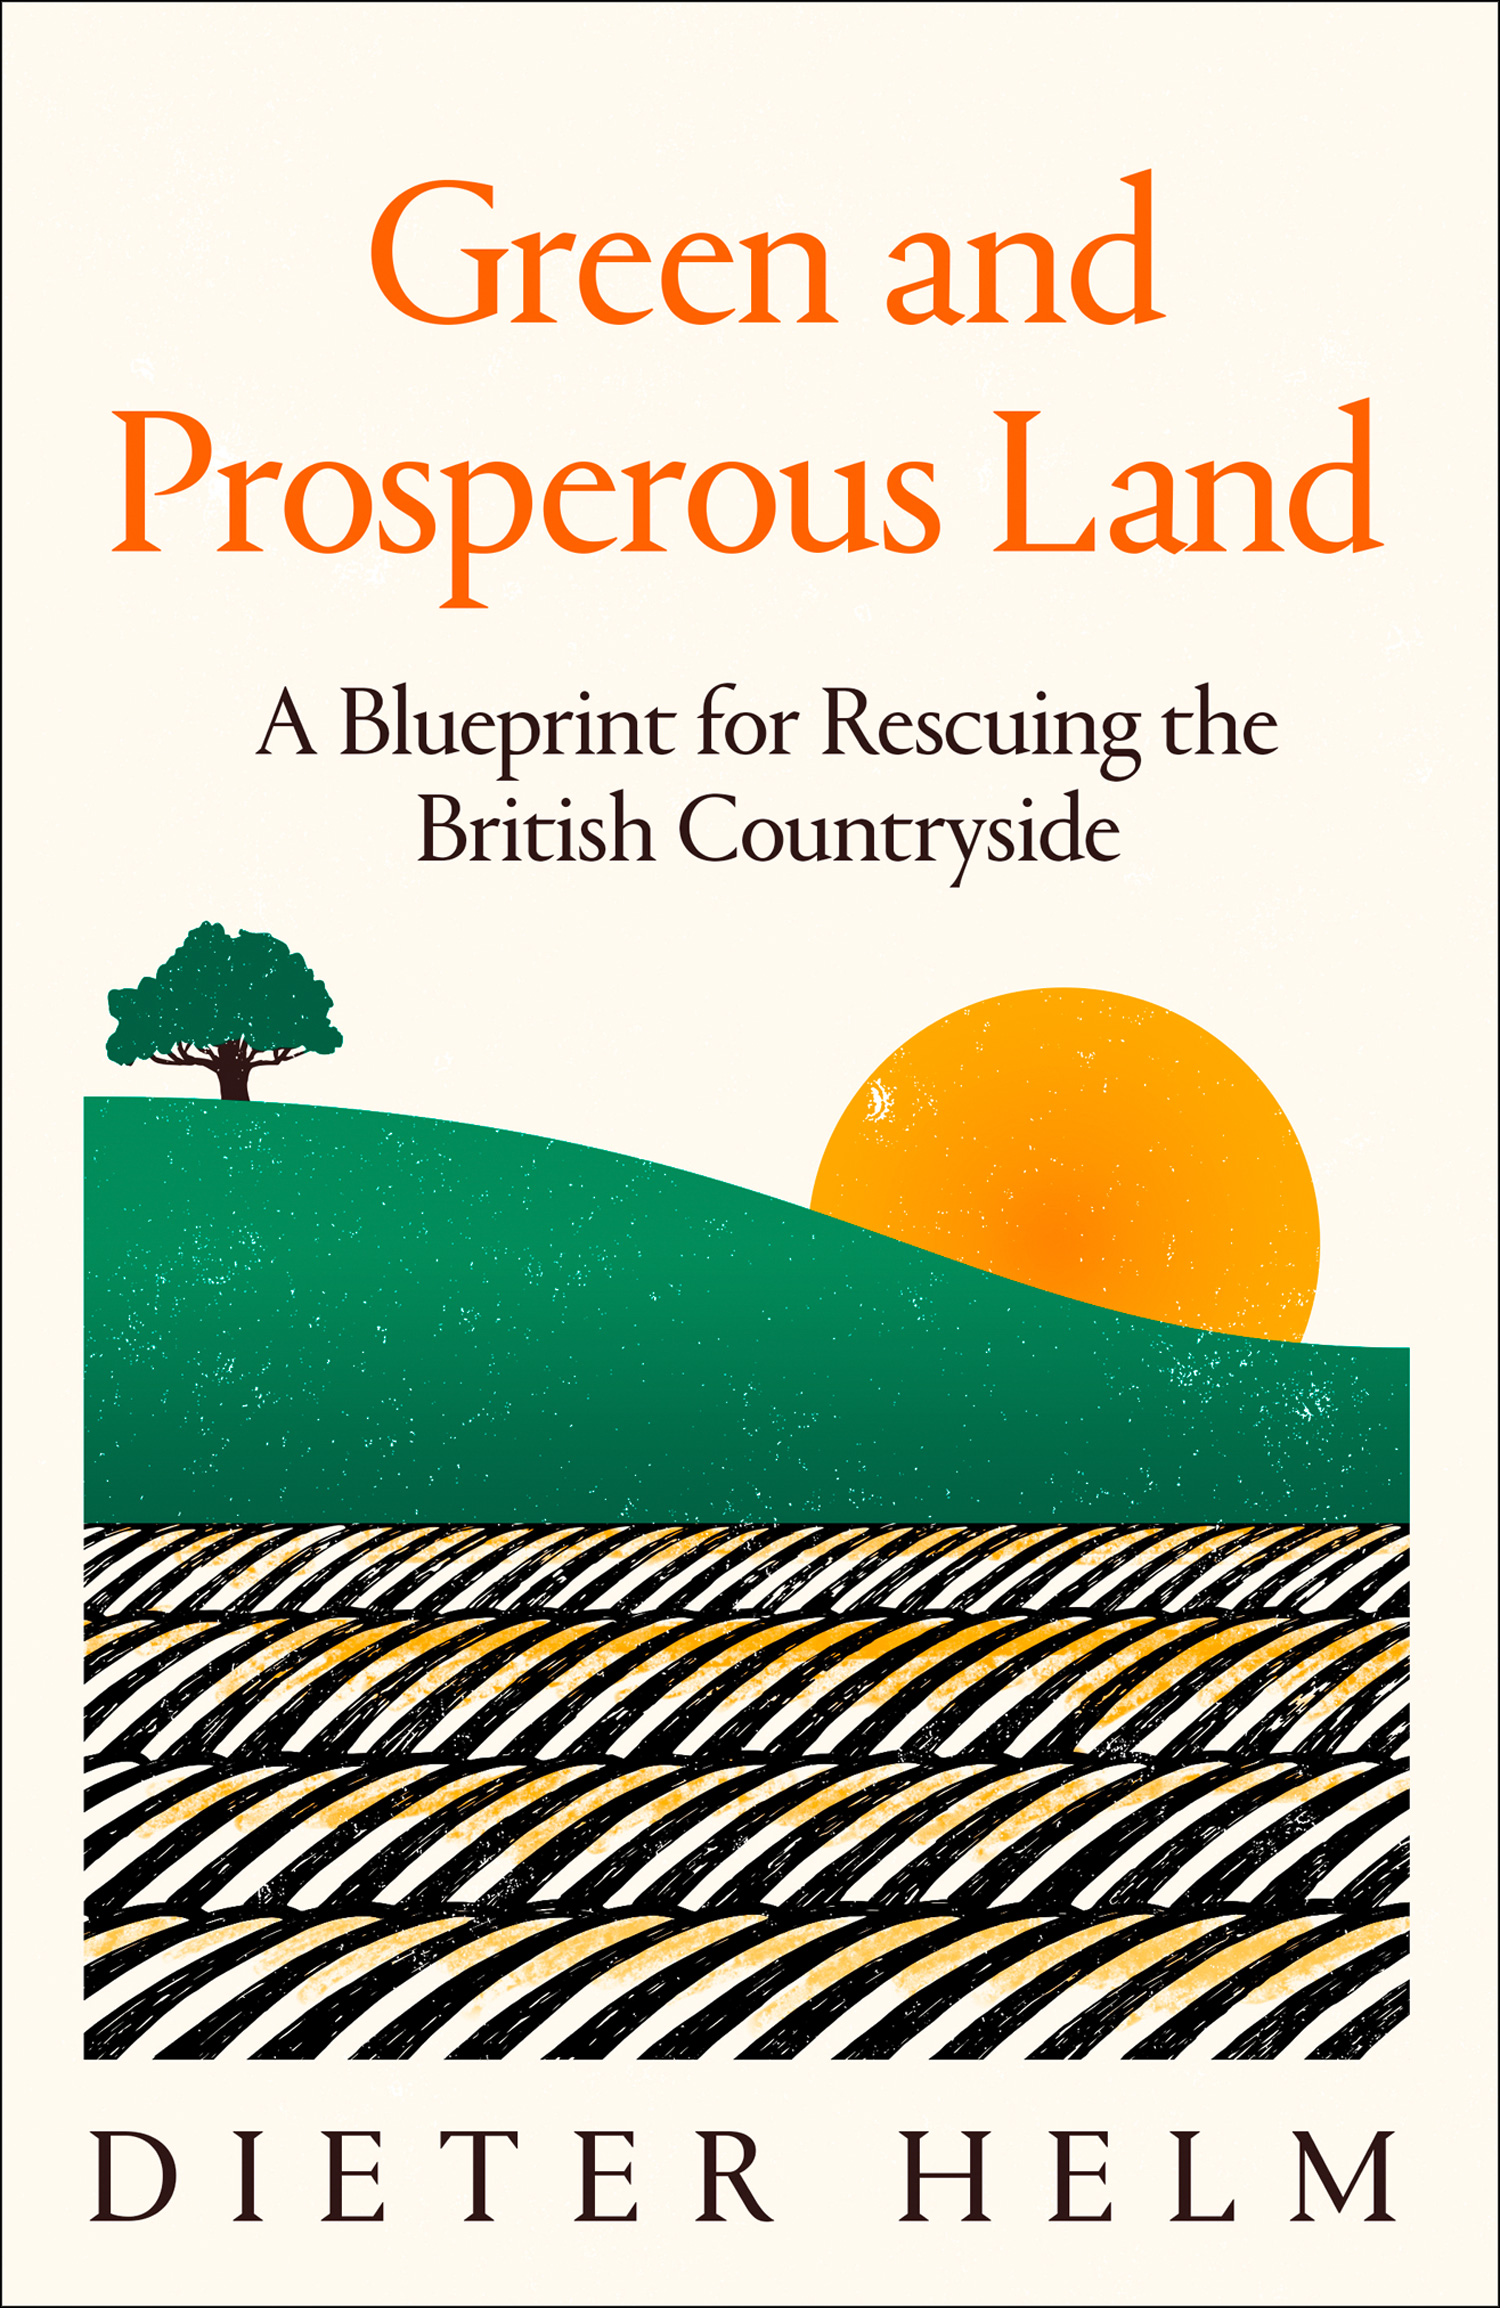 Dieter Helm Green and Prosperous Land